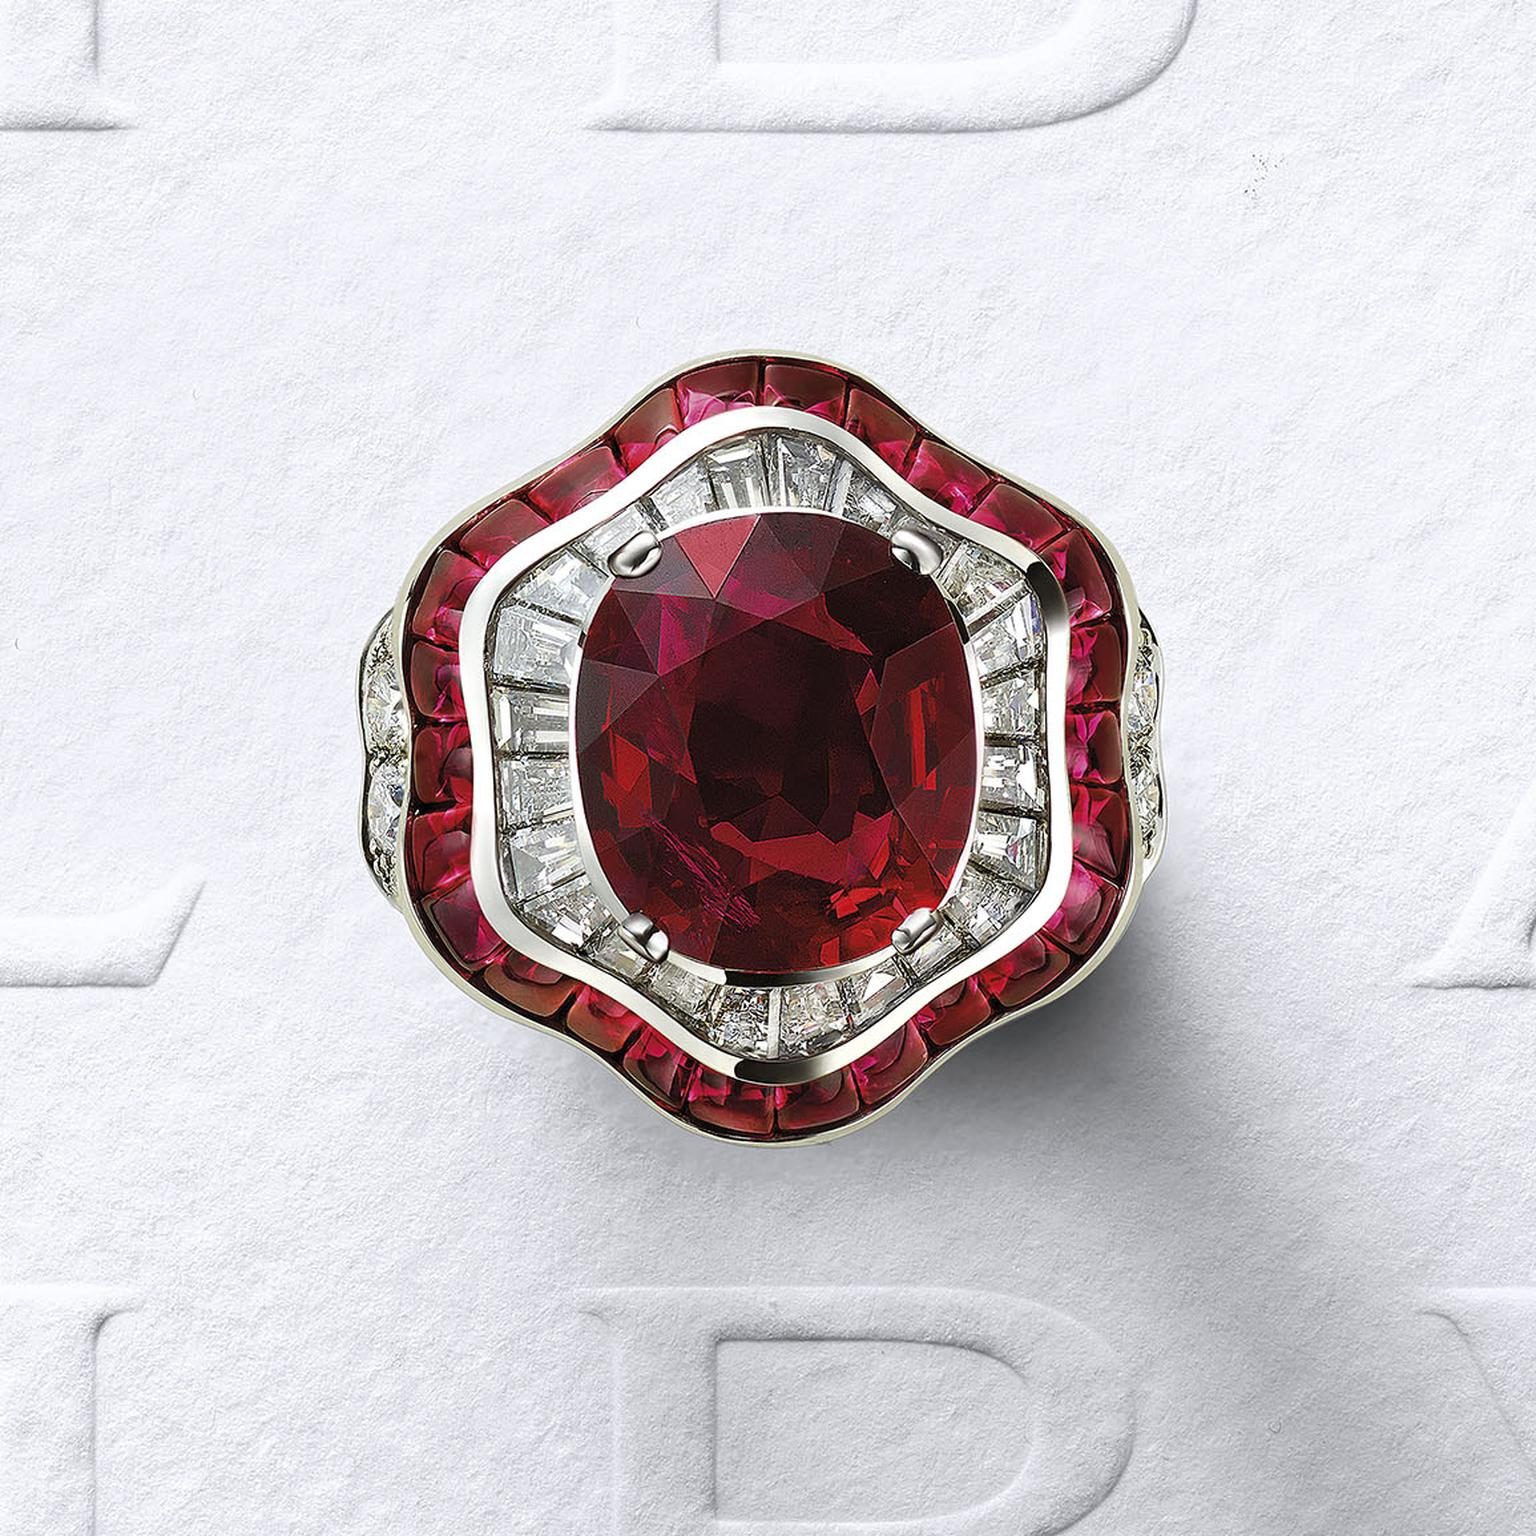 Bulgari Barocko Ruby Drapery ring